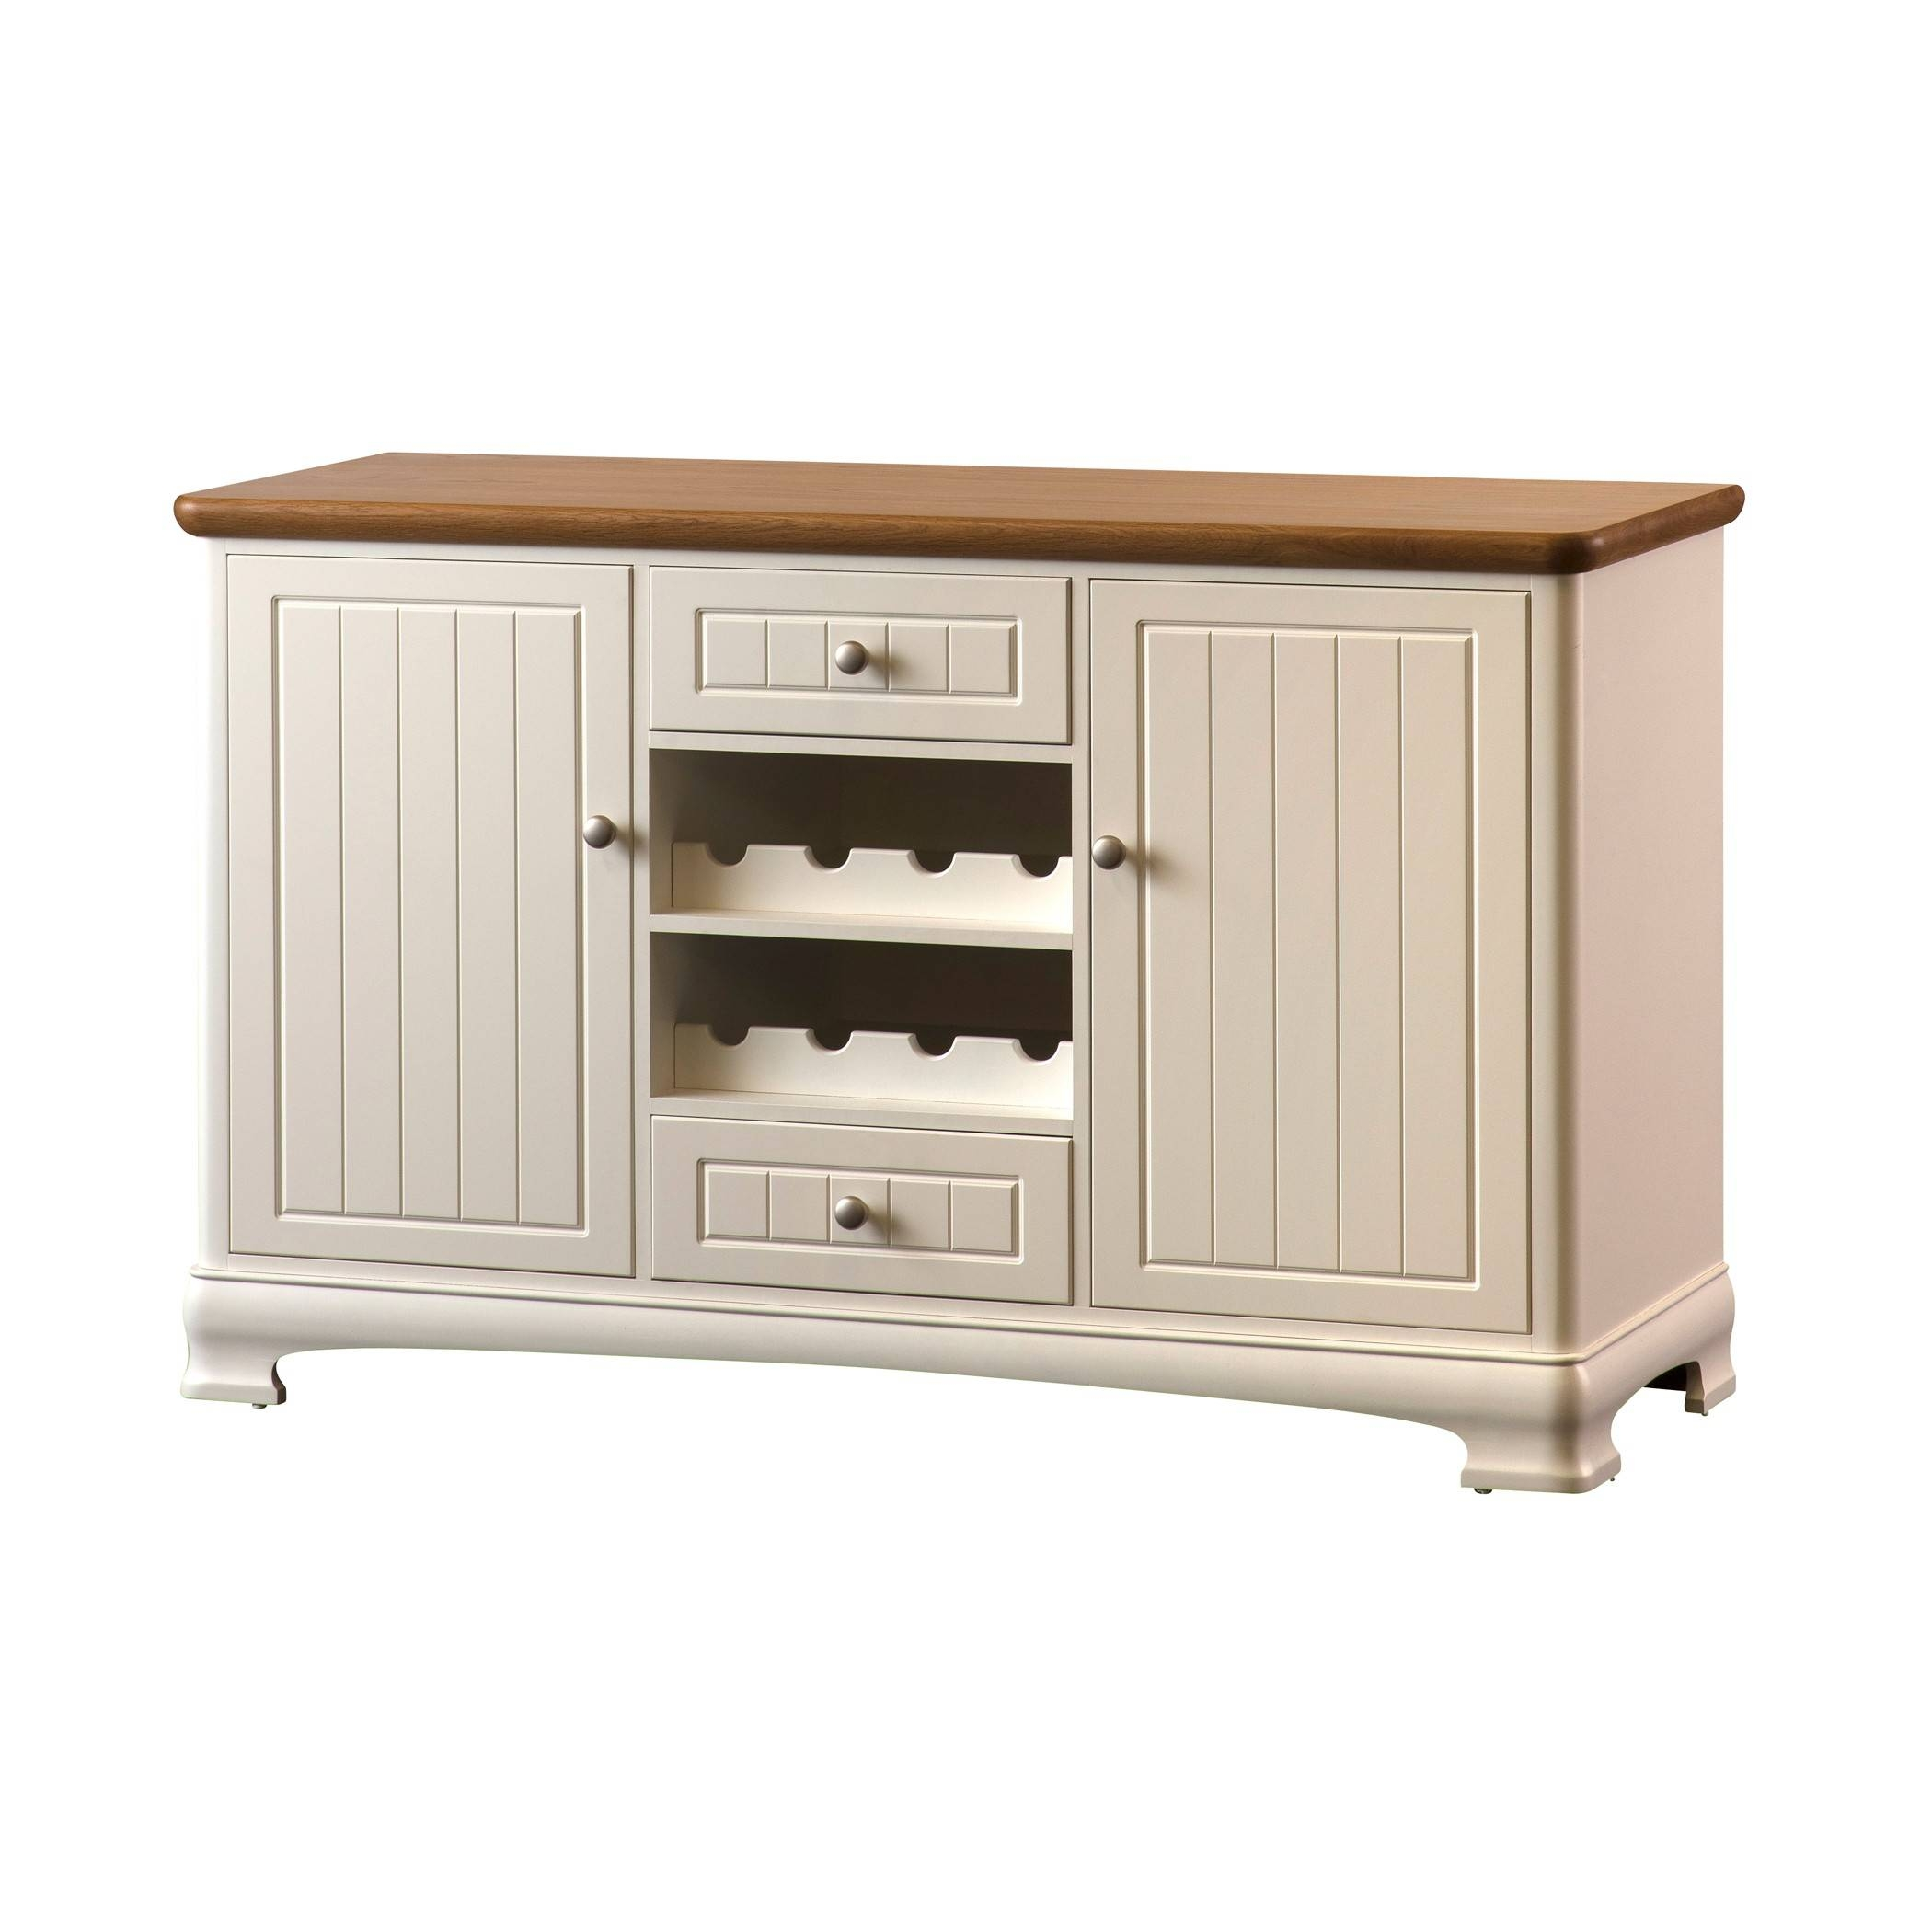 Painted Large Sideboard With Wine Rack | Gola Furniture Uk pertaining to Sideboards With Wine Rack (Image 11 of 15)